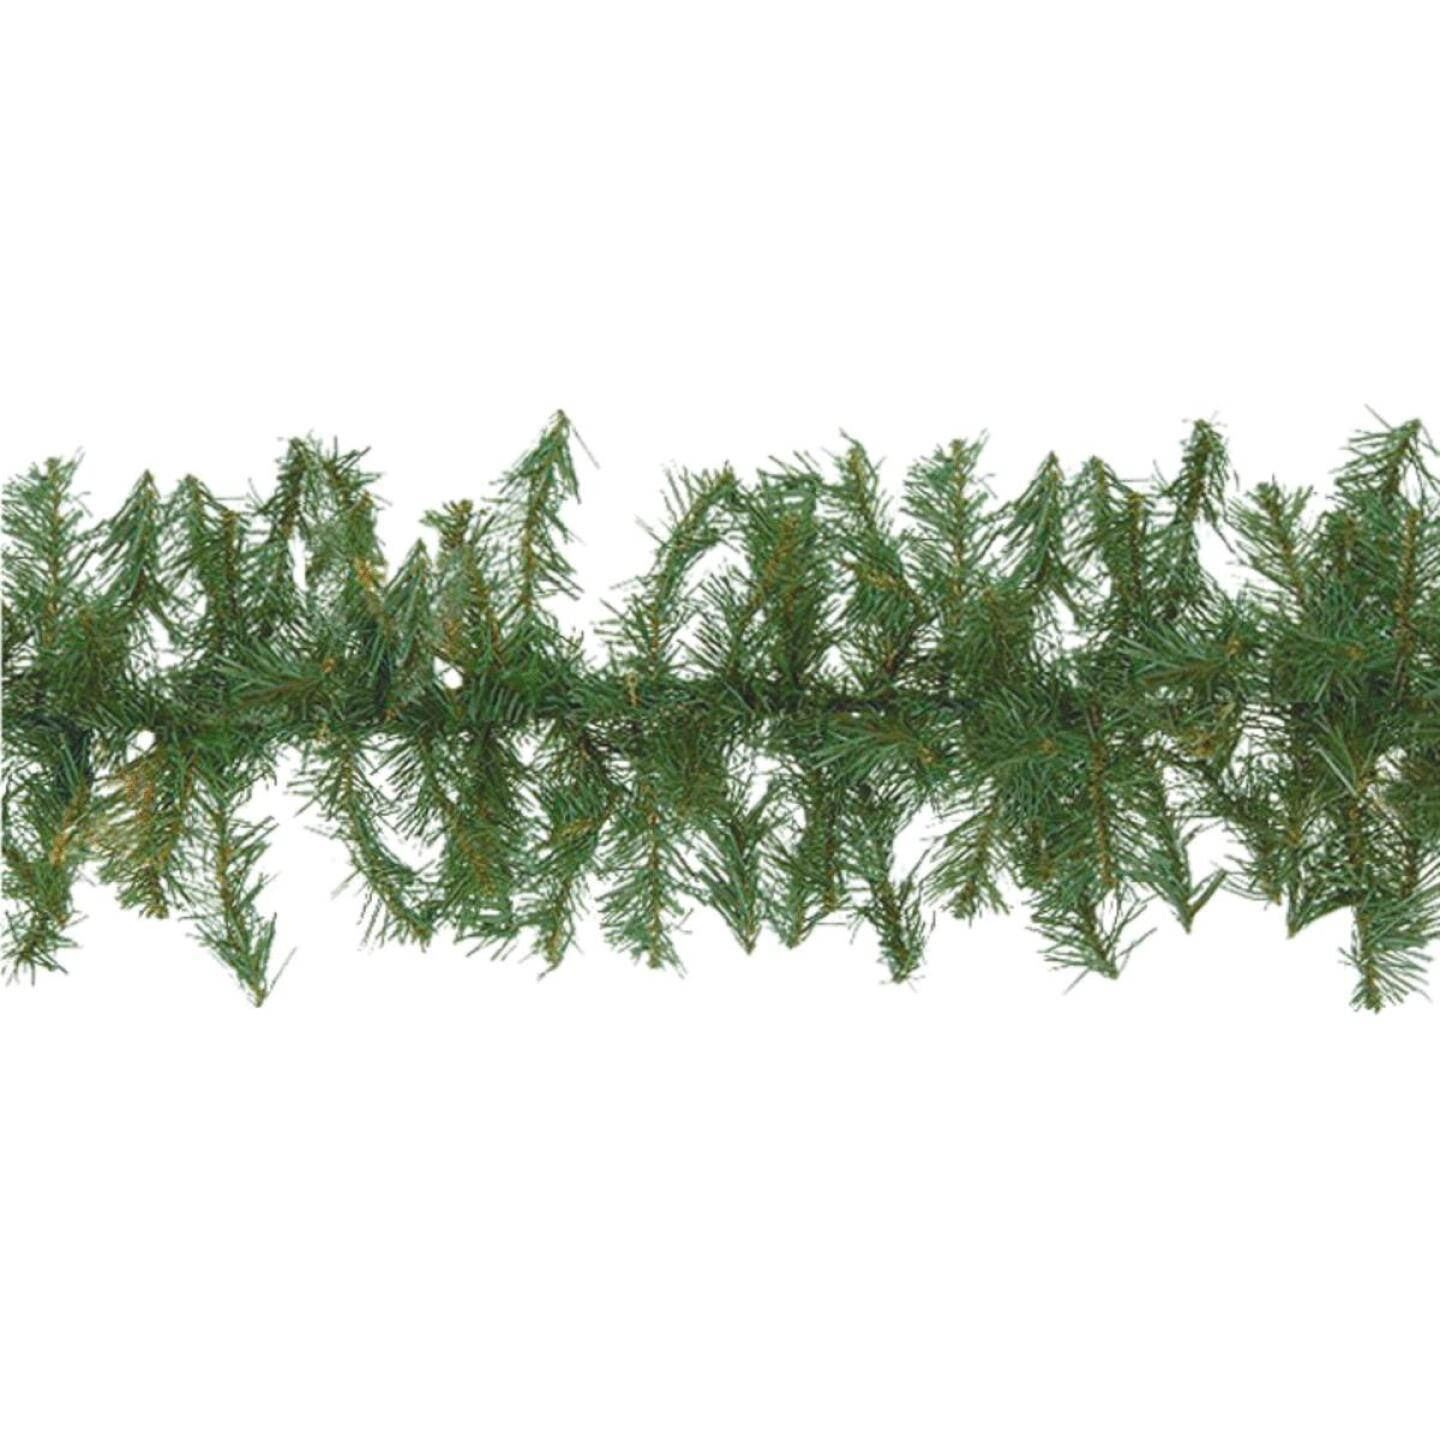 Gerson 9 Ft. Canadian Pine Garland Image 1